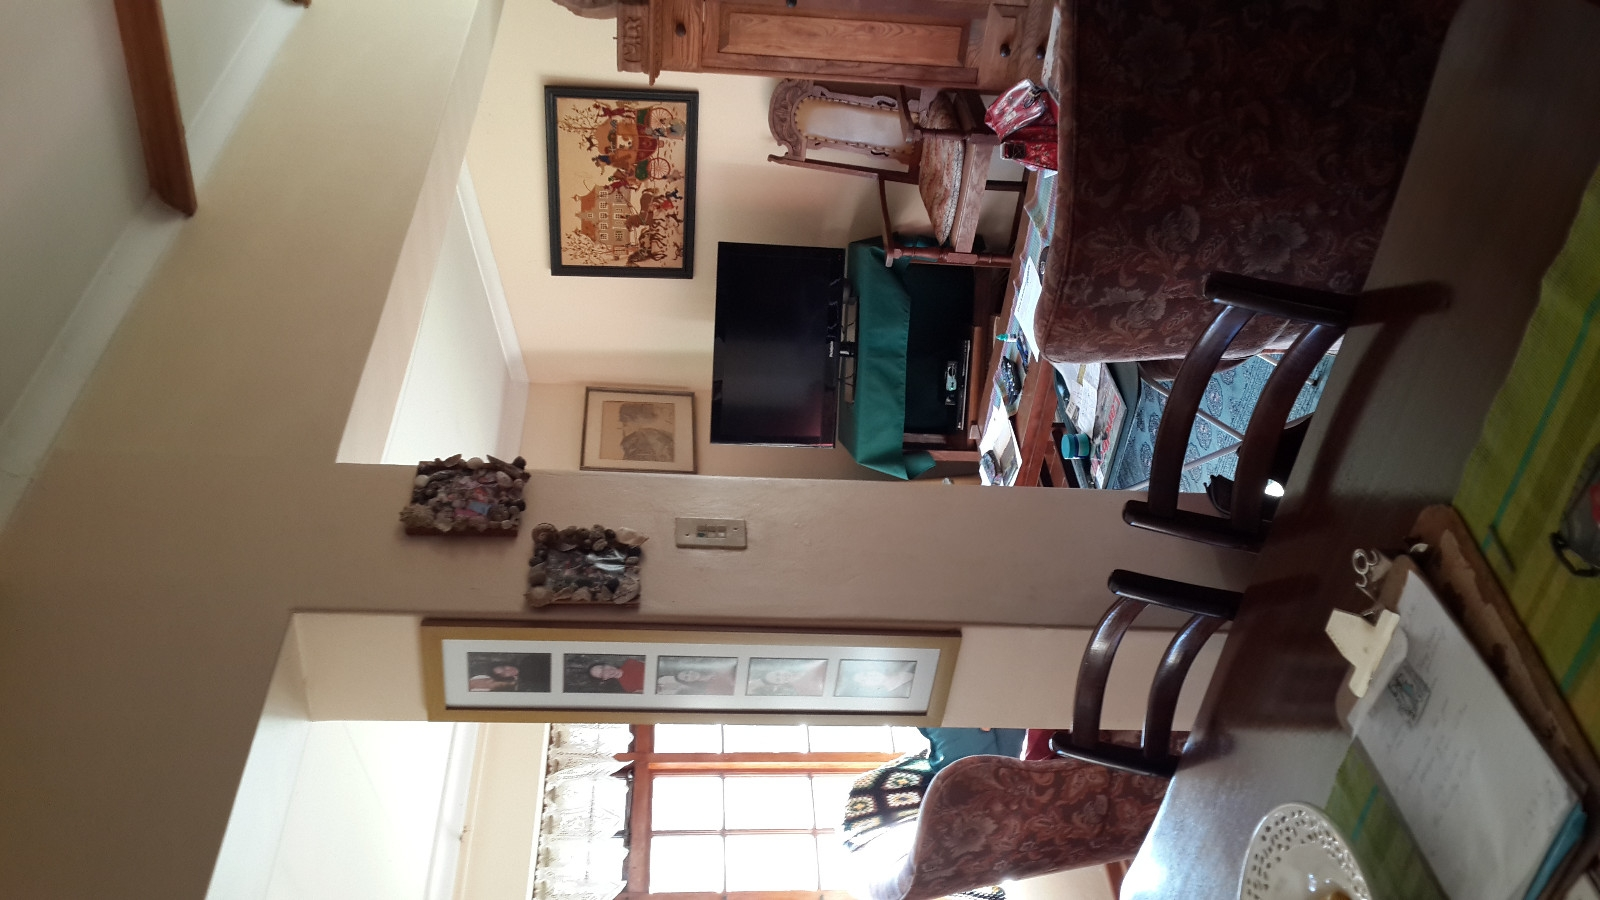 House in Bult - 20140724 092046